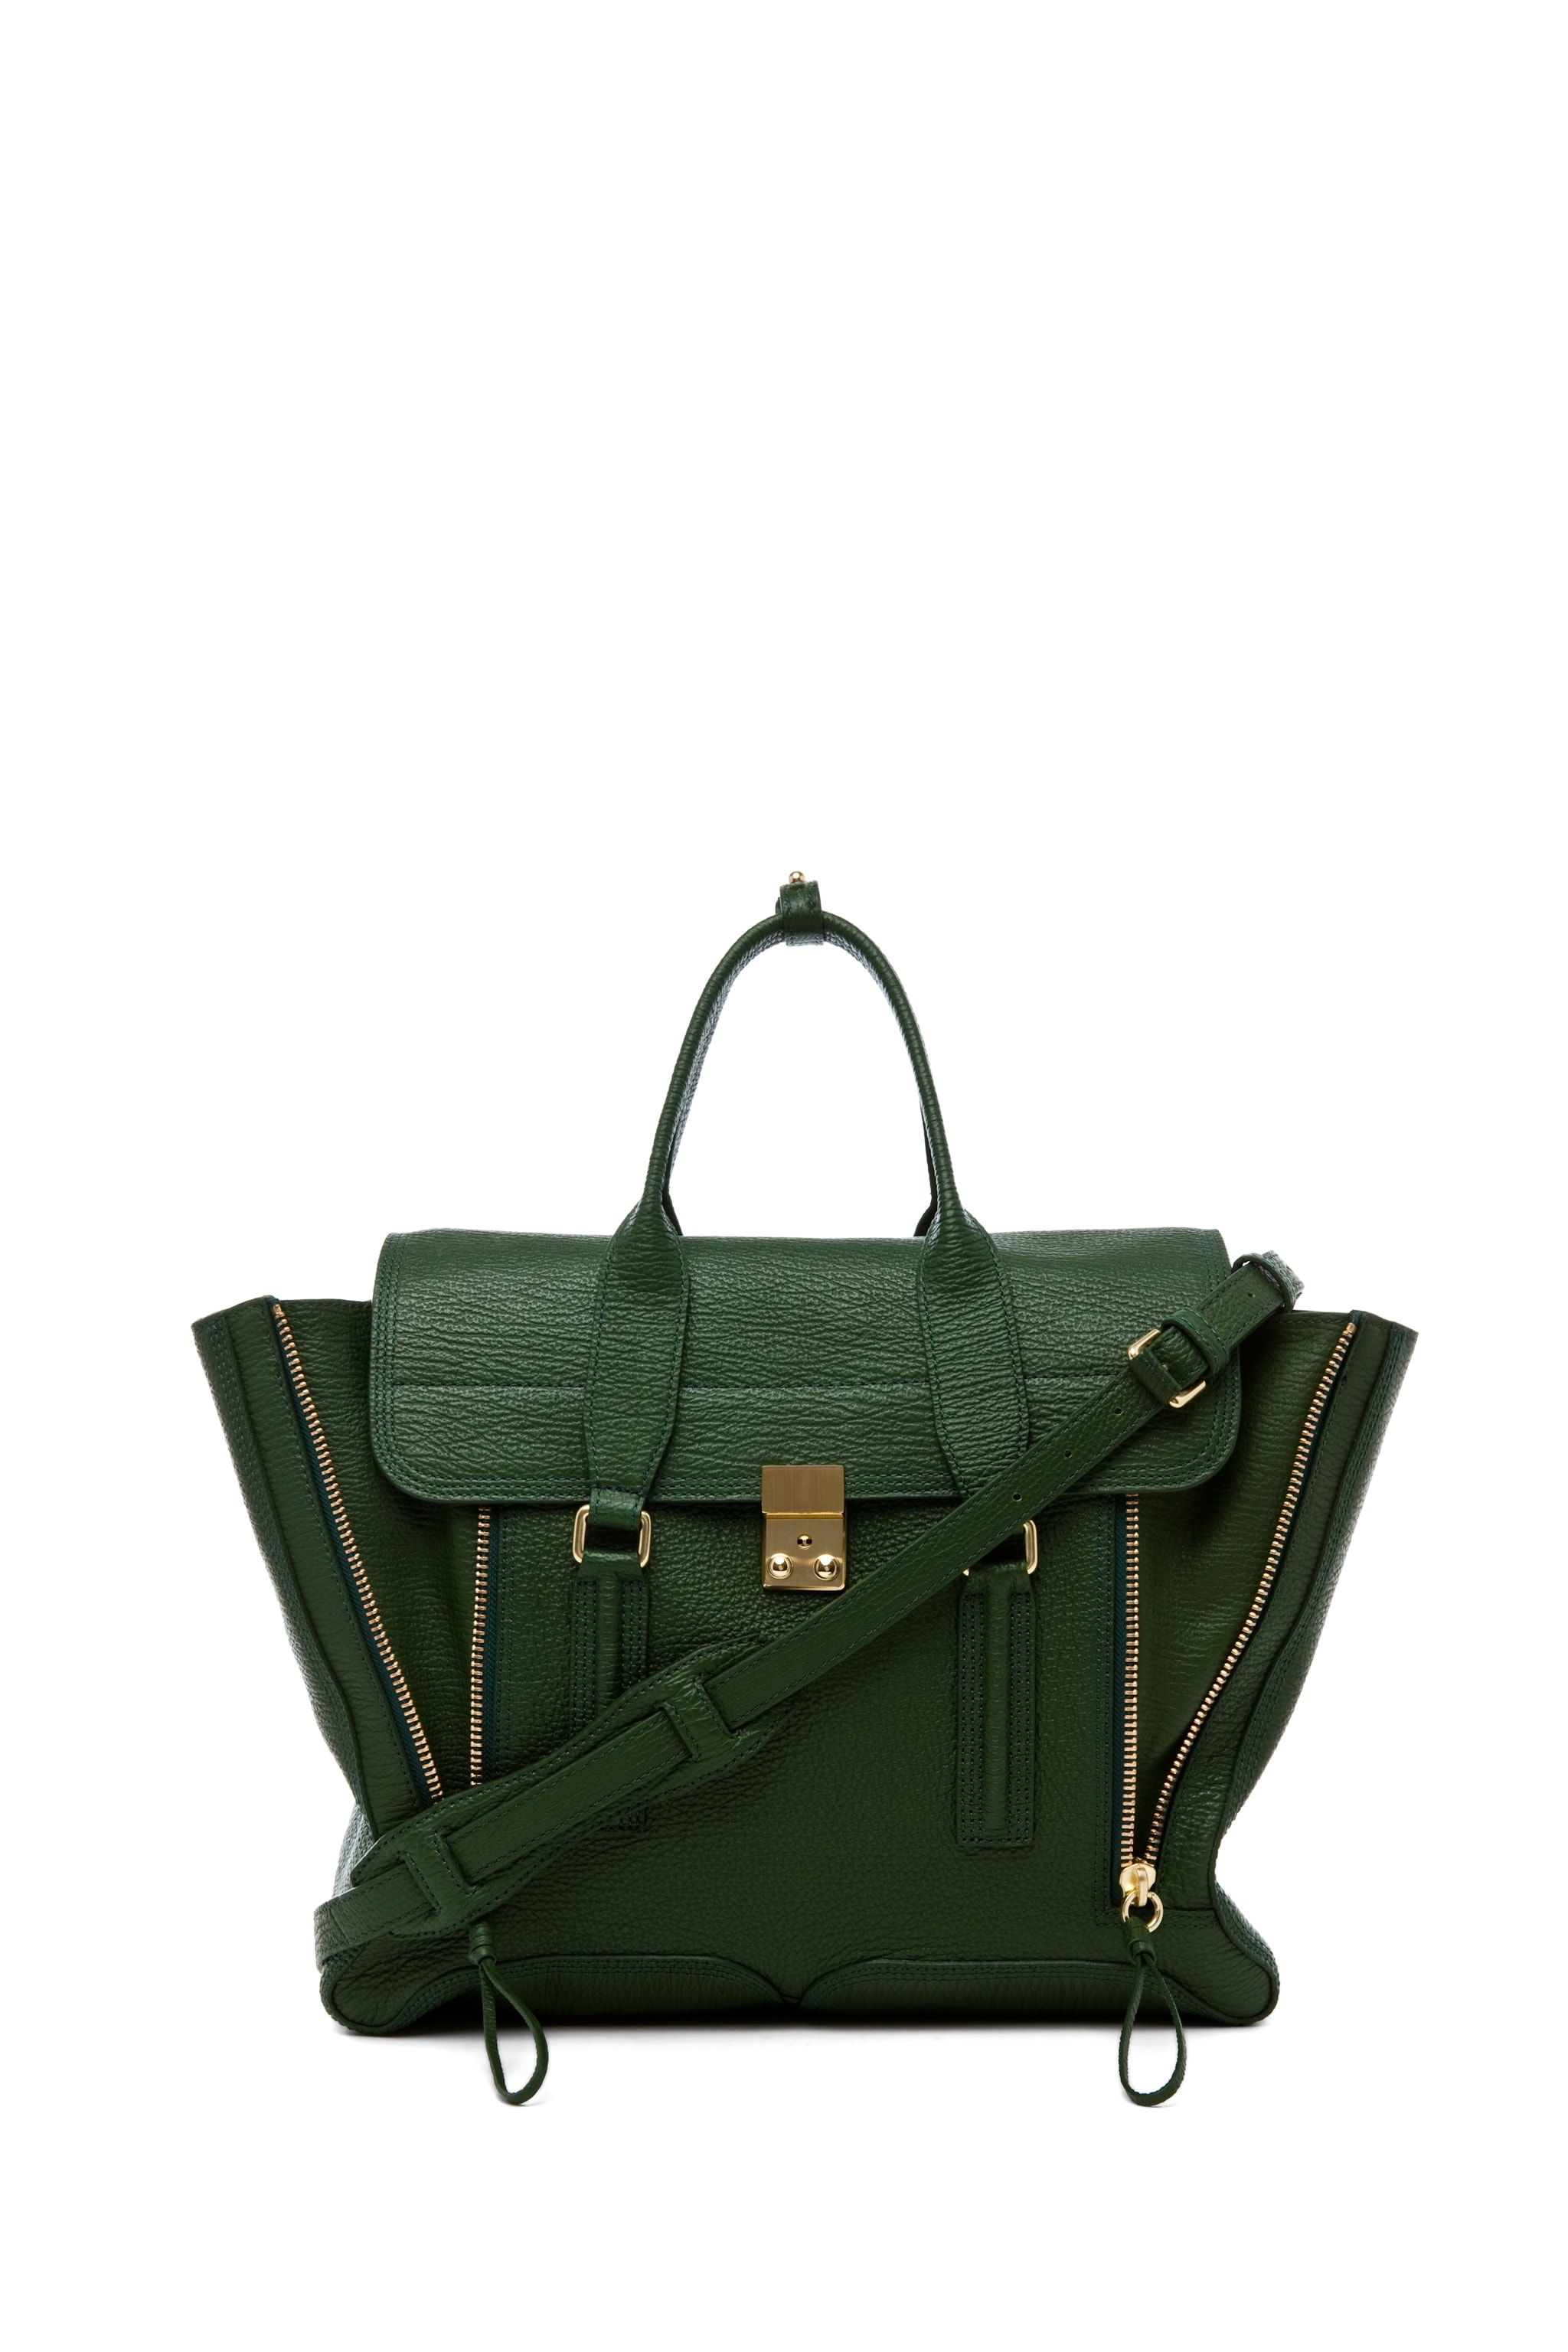 Image 1 of 3.1 phillip lim Large Pashli Trapeze in Jade